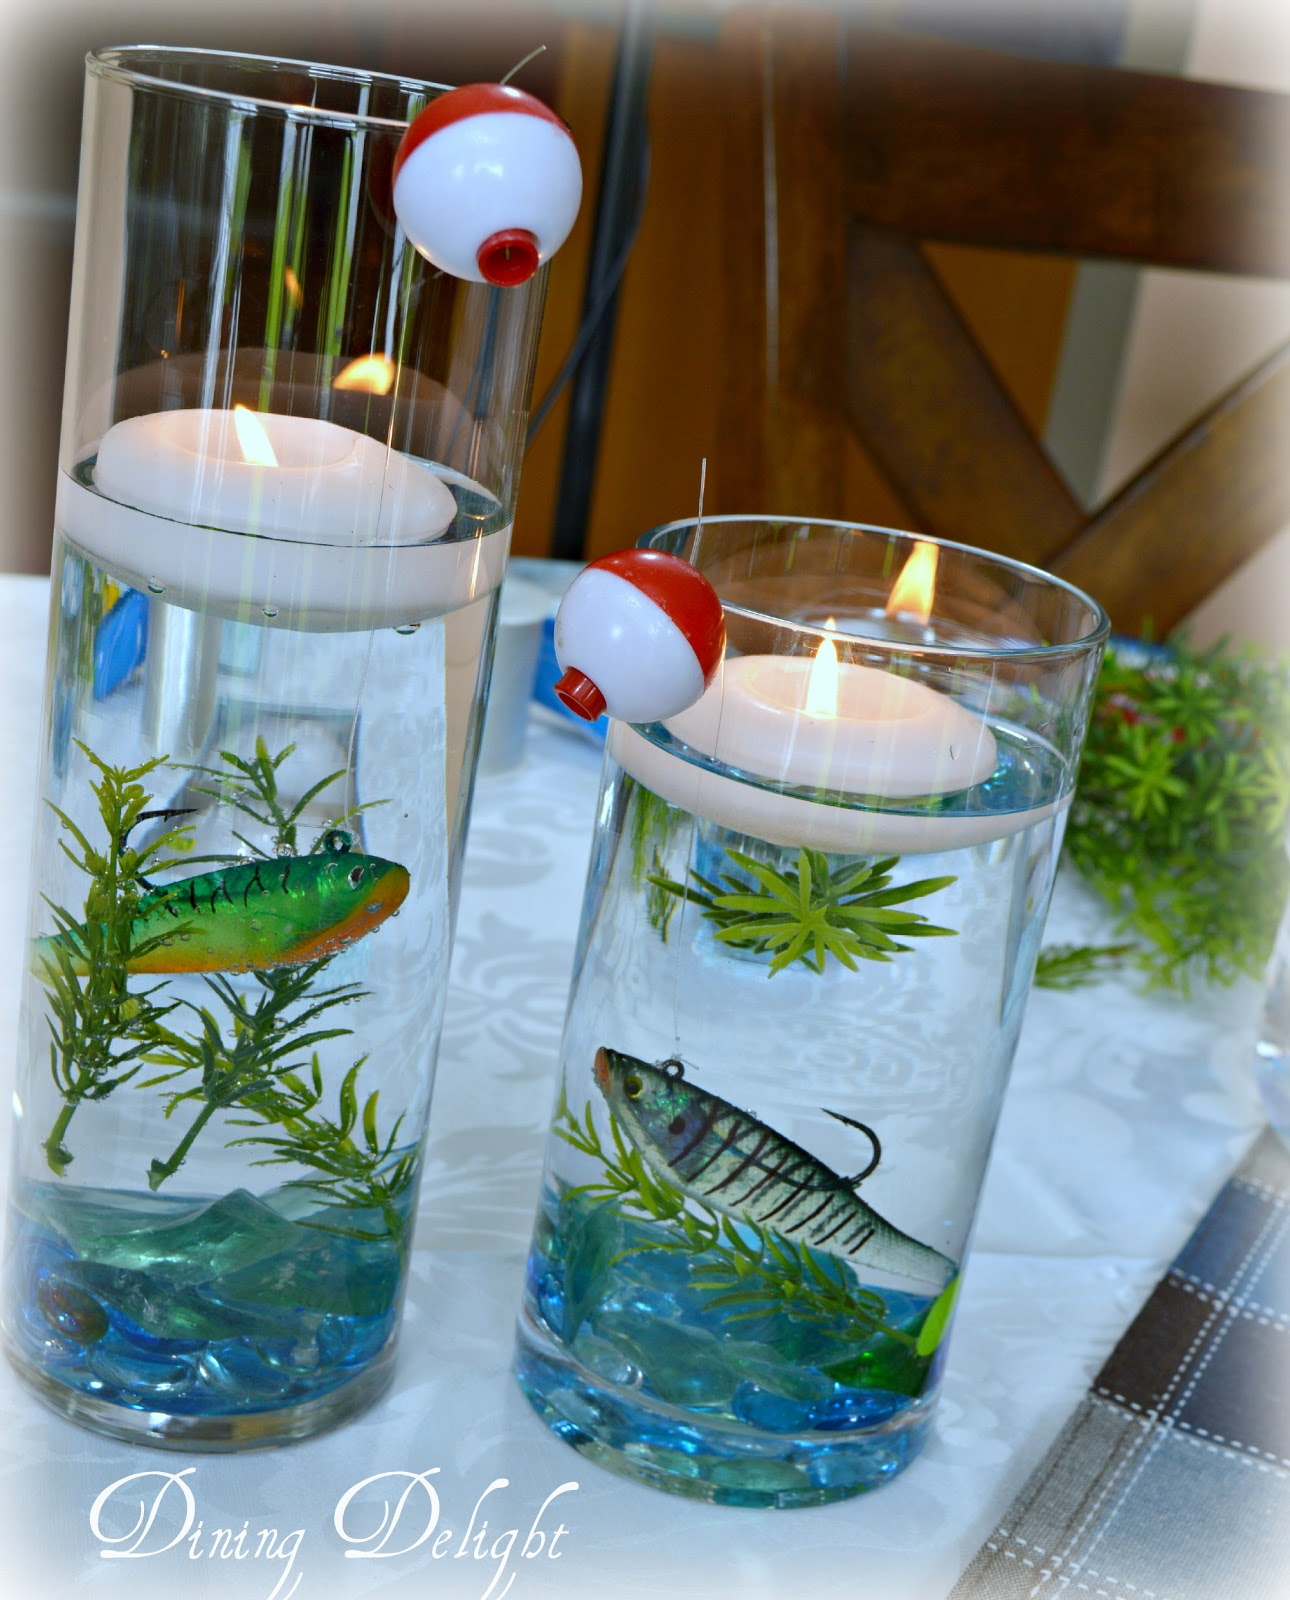 Floating Candles Centerpieces For Parties: Dining Delight: Fishing Centerpiece In Cylinder Vase